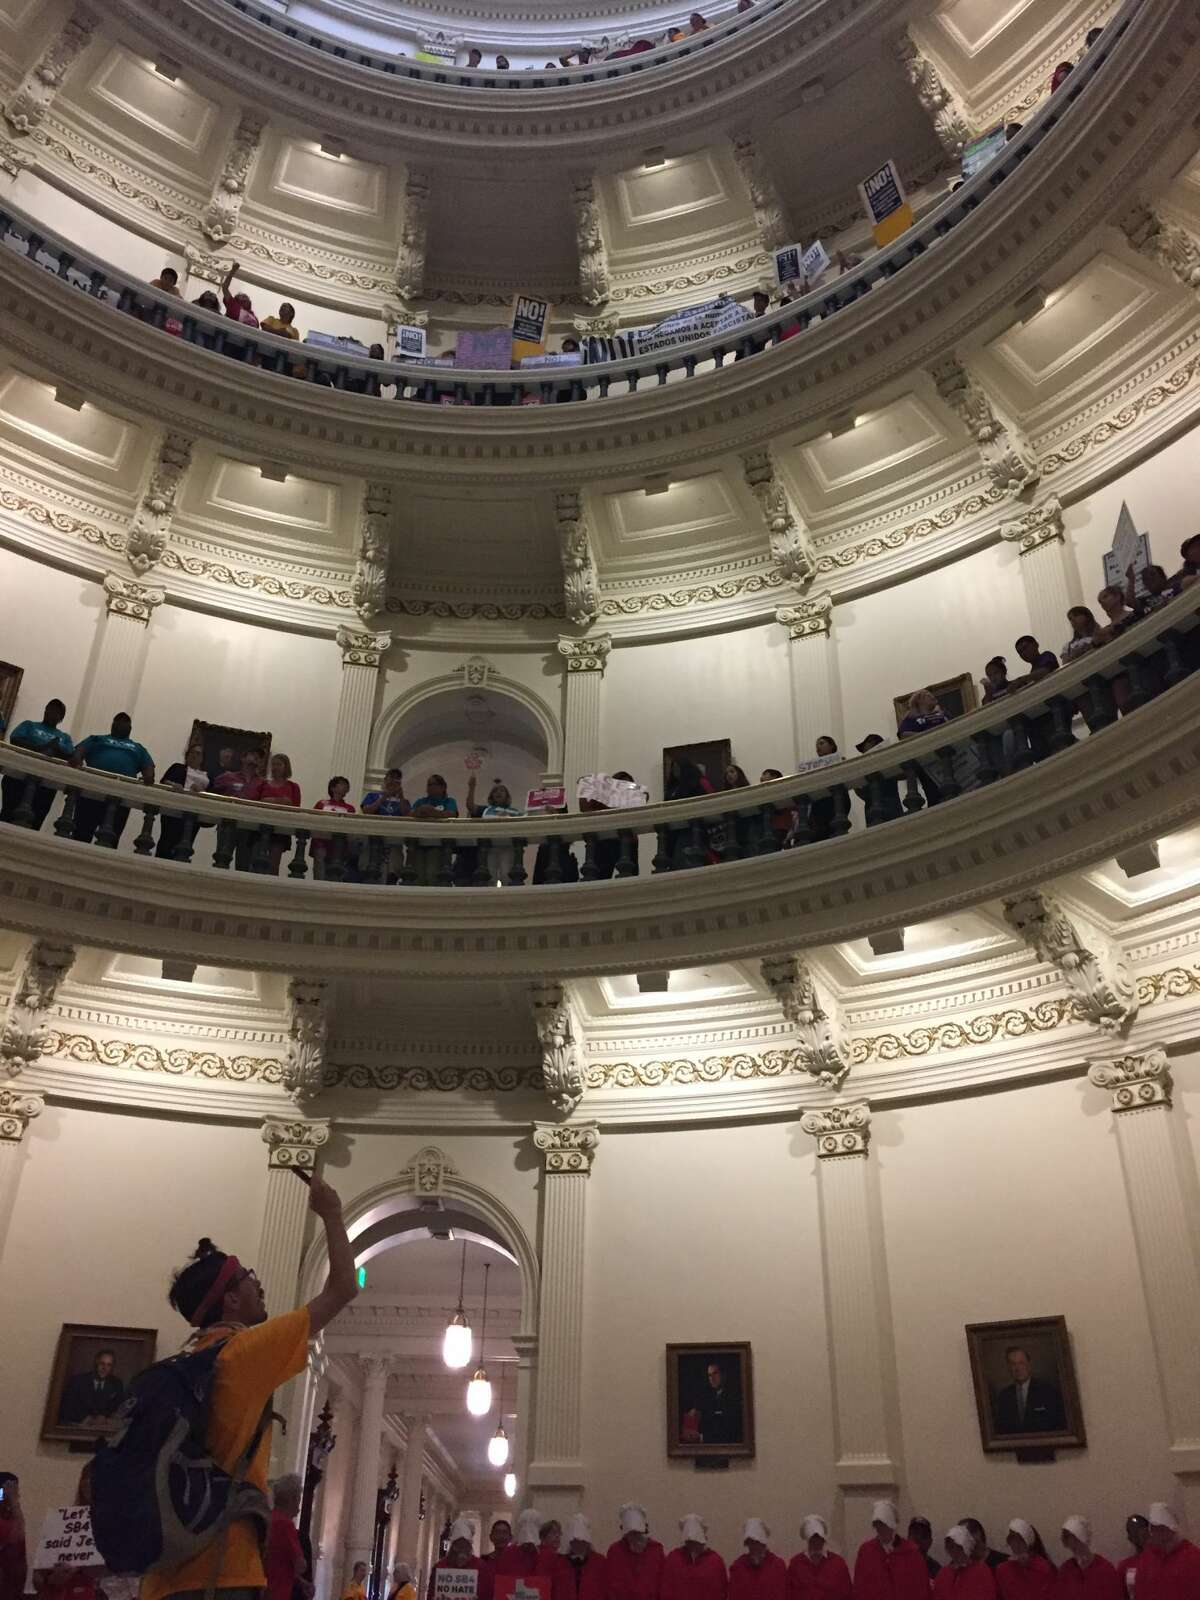 Protesters gather in the Texas Capitol on Monday, May 29, 2017 to protest the